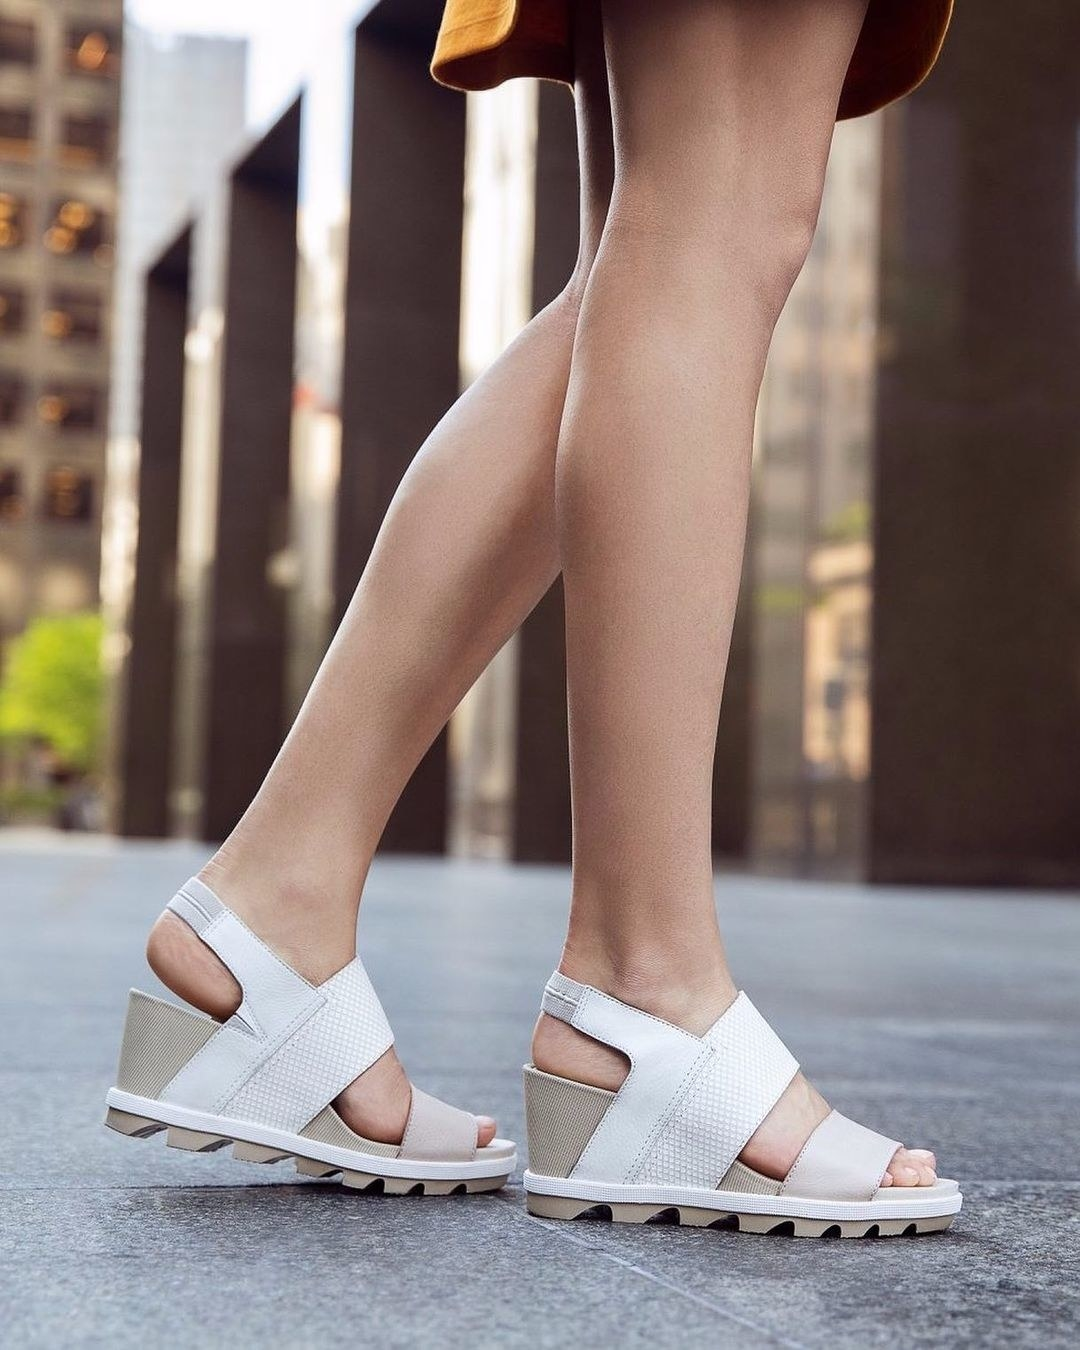 model wearing the open-toe wedge sandals with two white straps across the footbed, strap around the heel and grey wedge and sole